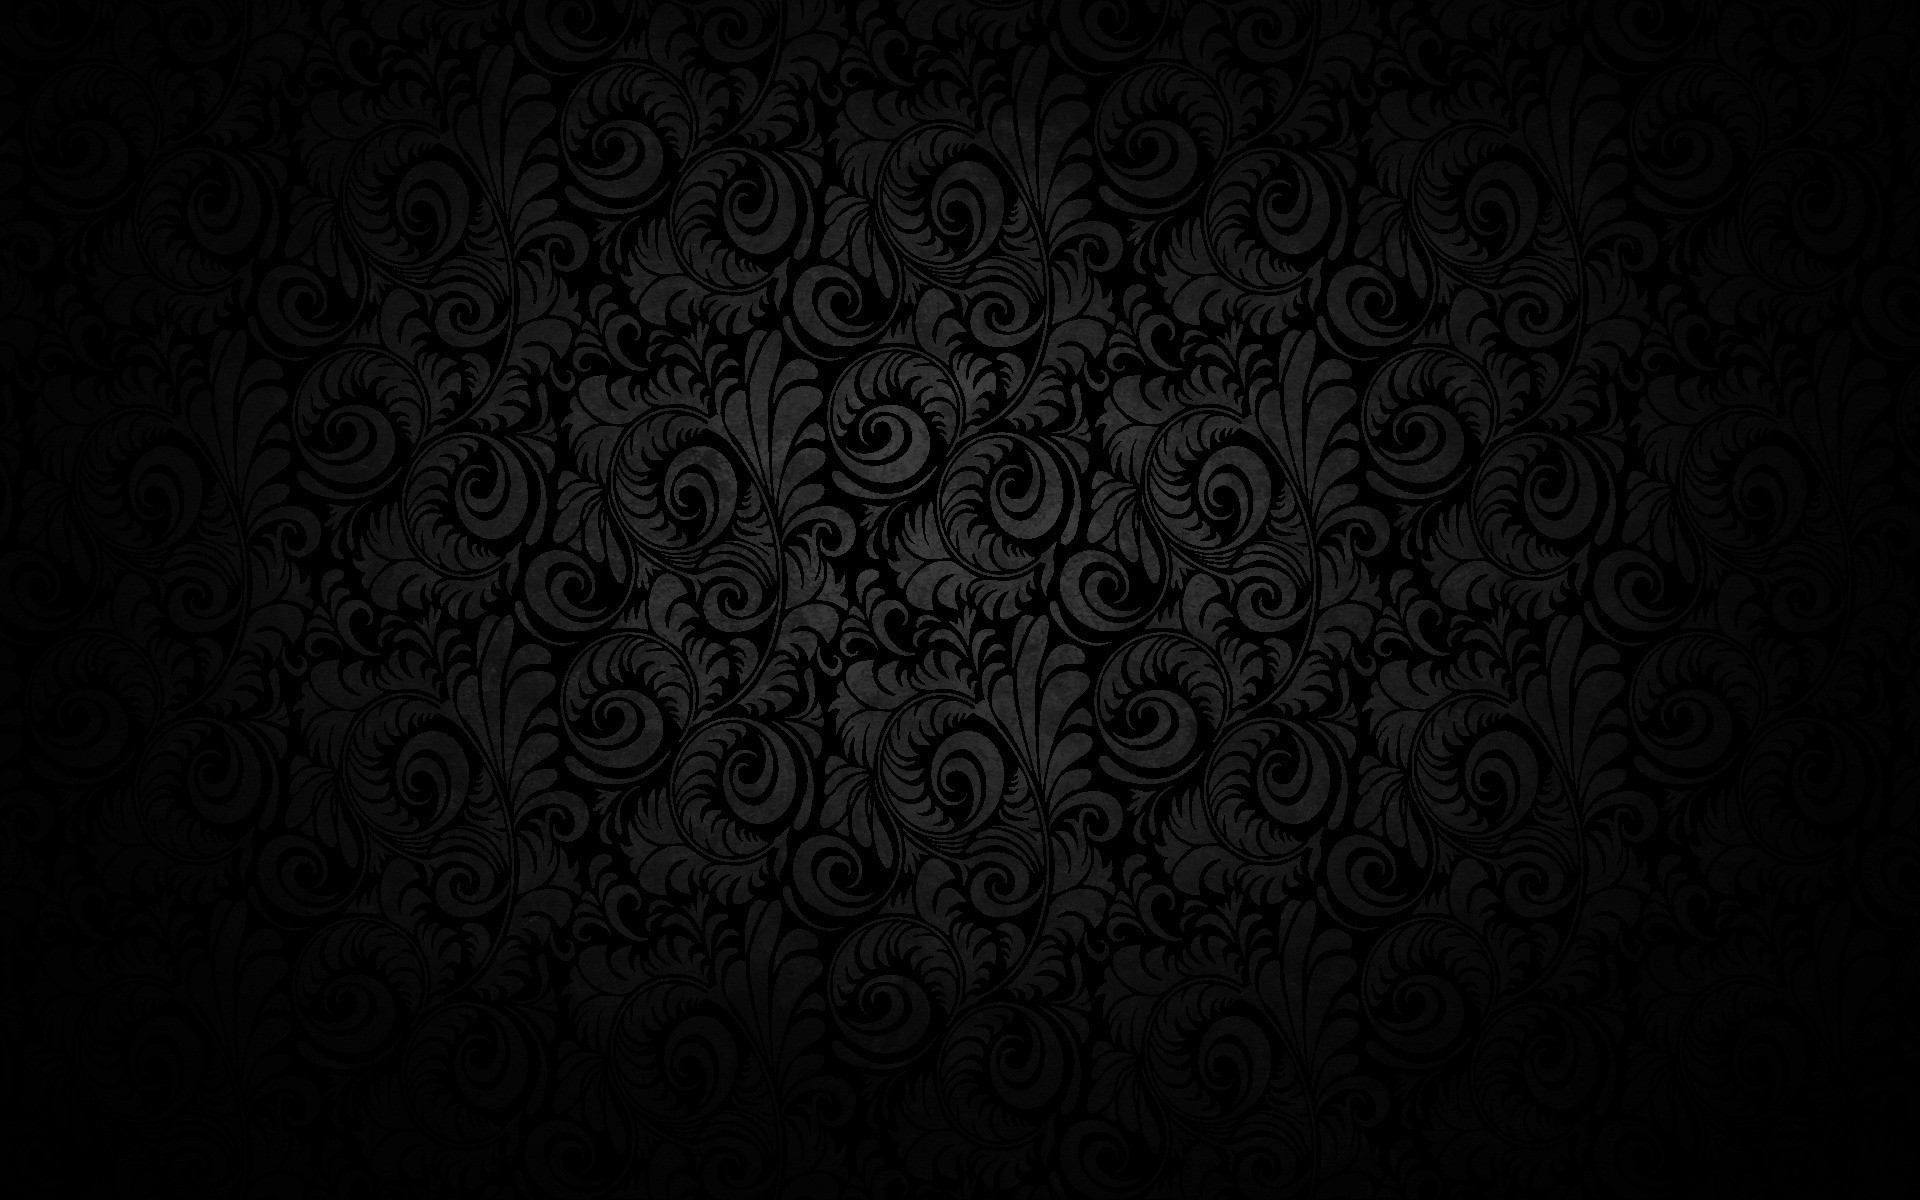 black and white photos   ABSTRACT PATTERN HD WALLPAPER